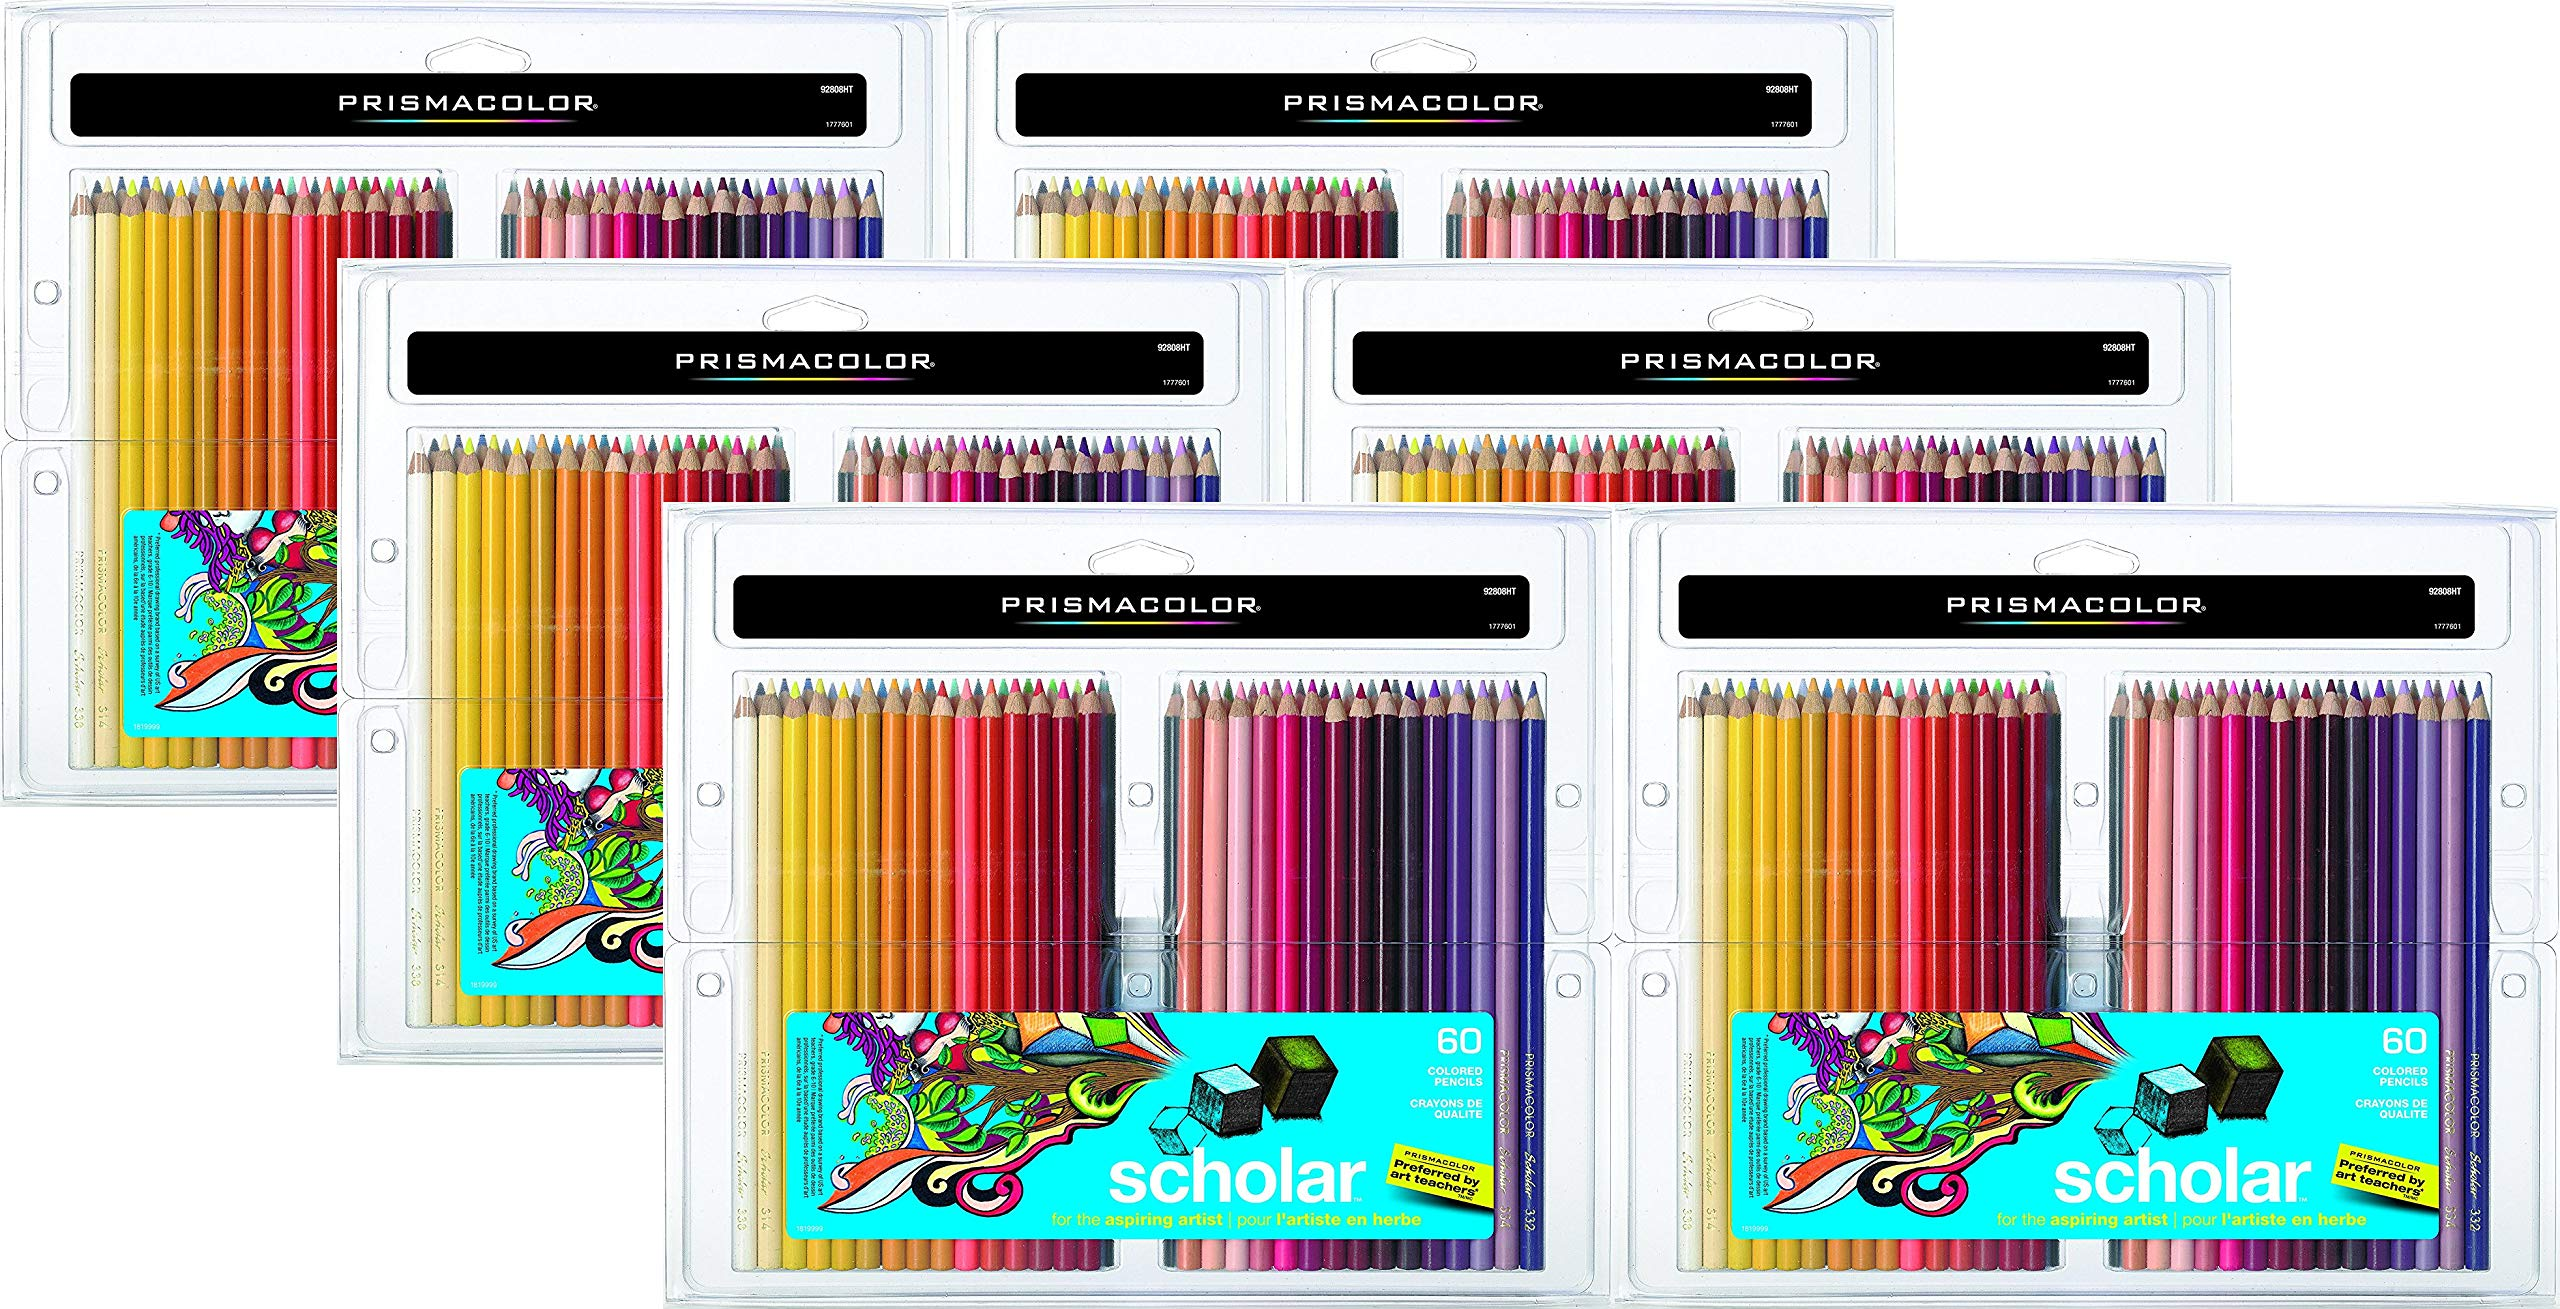 Prismacolor 92808HT Scholar 360 (6 Packs of 60 Pencils) Colored Pencils; Soft, Smooth Leads Ideal for Blending and Shading; Hardened Cores Resist Breakage; Rich, Vibrantly Pigmented Colors